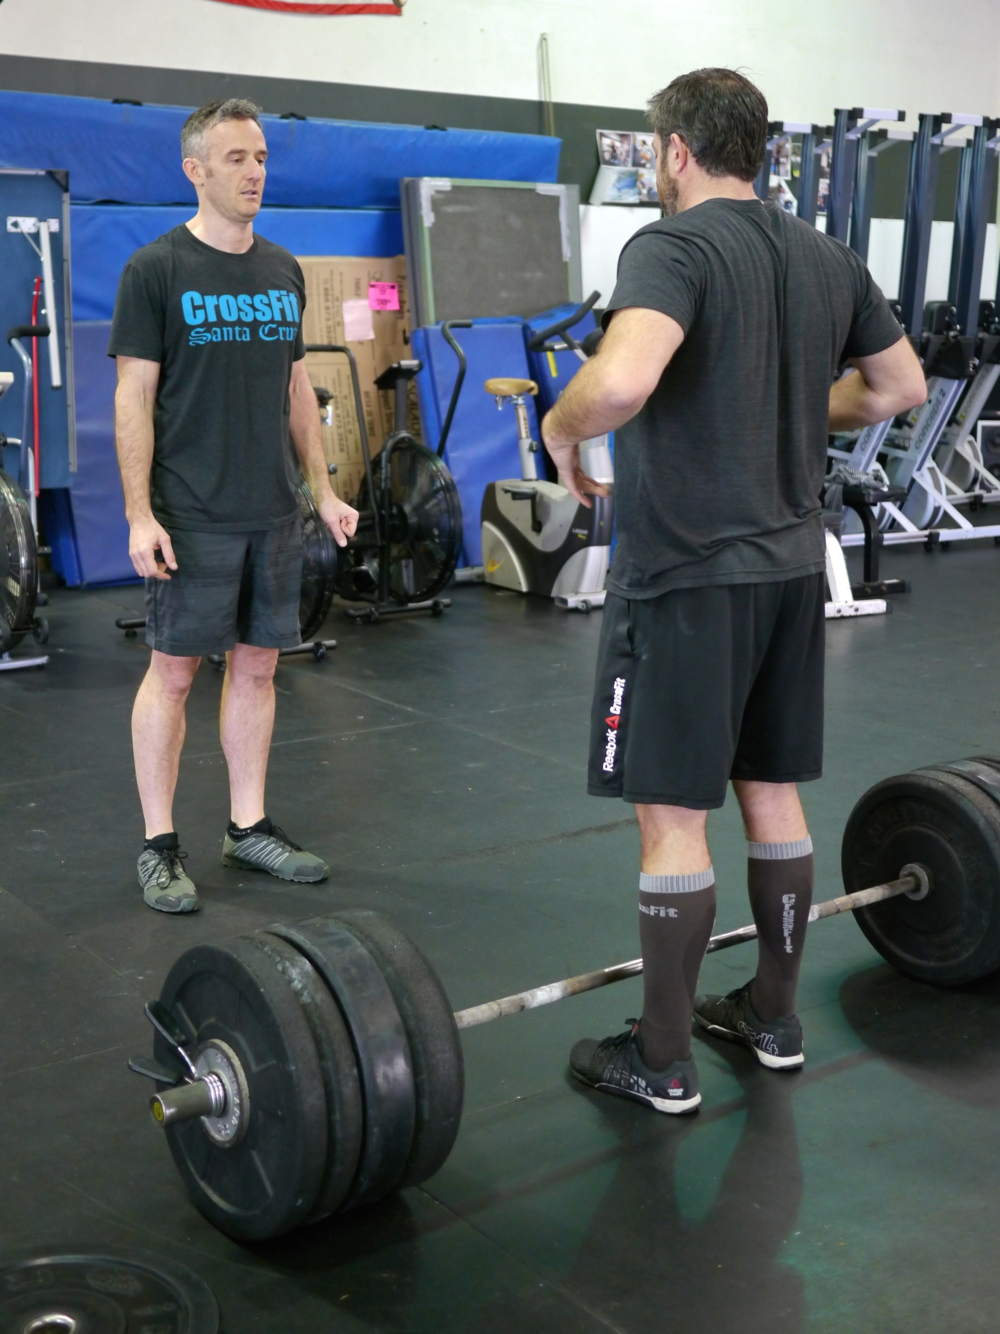 Hollis and Roger working on deadlift position